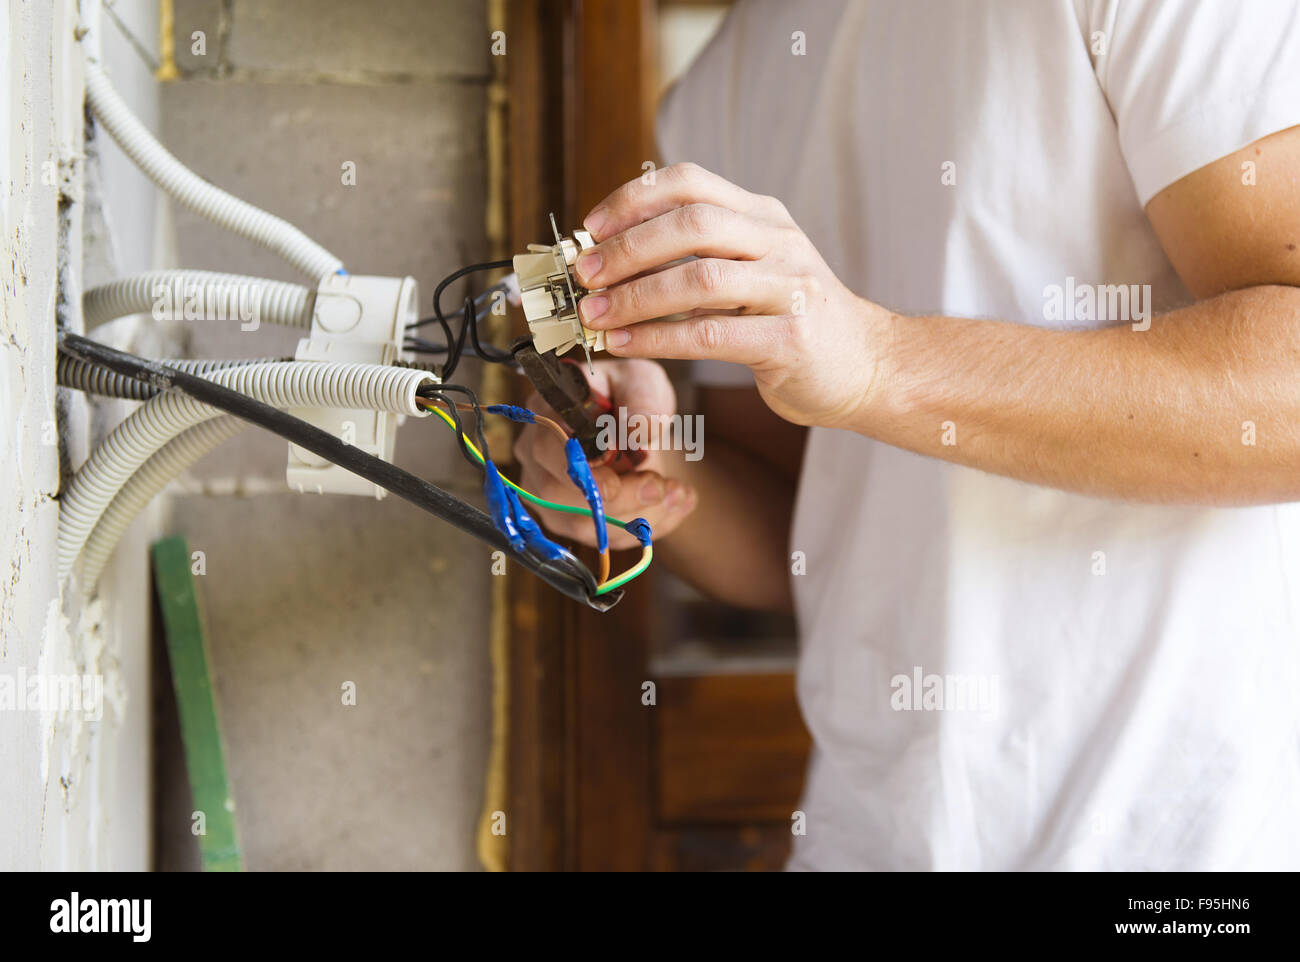 New Electrical Wiring In House Stock Photos Electrician Installing Light A Image